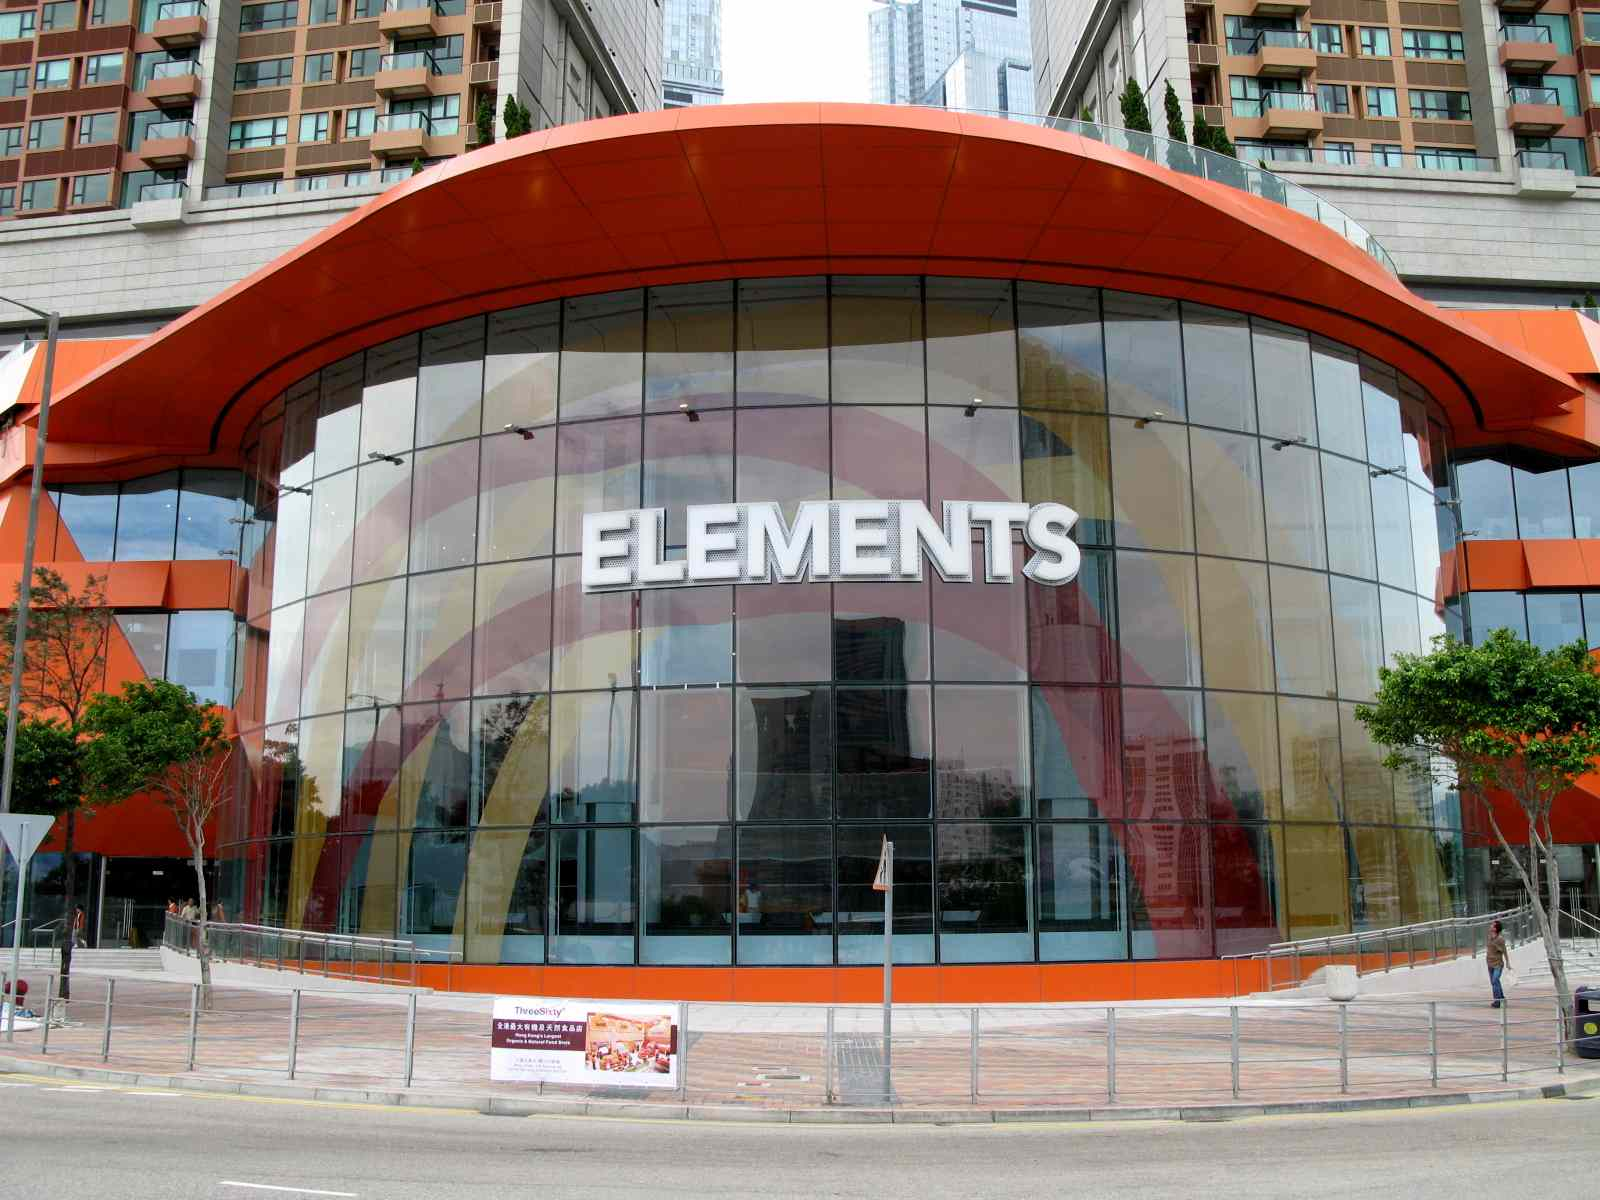 Entrance to Elements